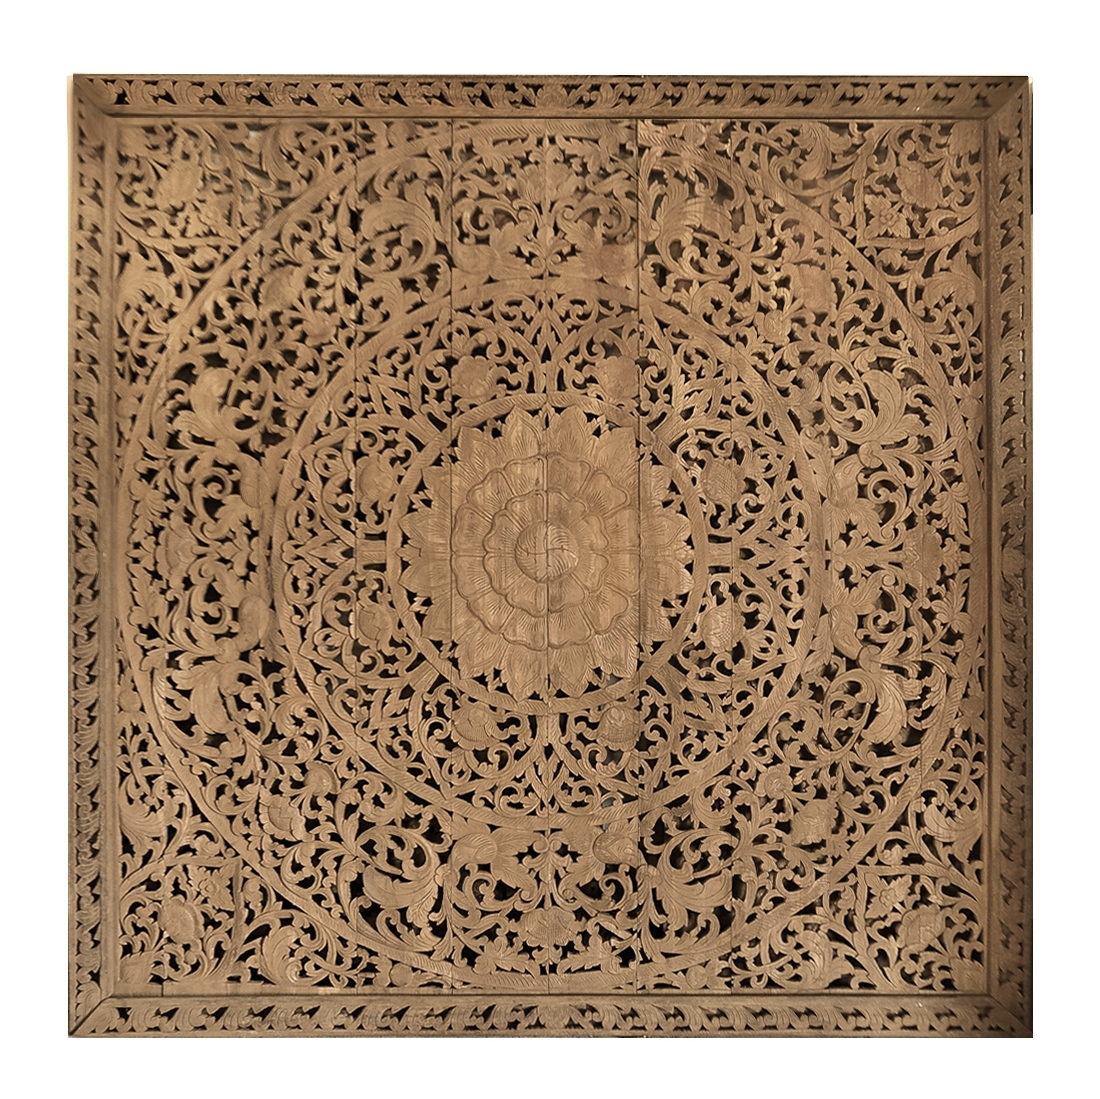 Well Known Wooden Wall Art For Buy Large Grand Carved Wooden Wall Art Or Ceiling Panel Online (View 10 of 15)